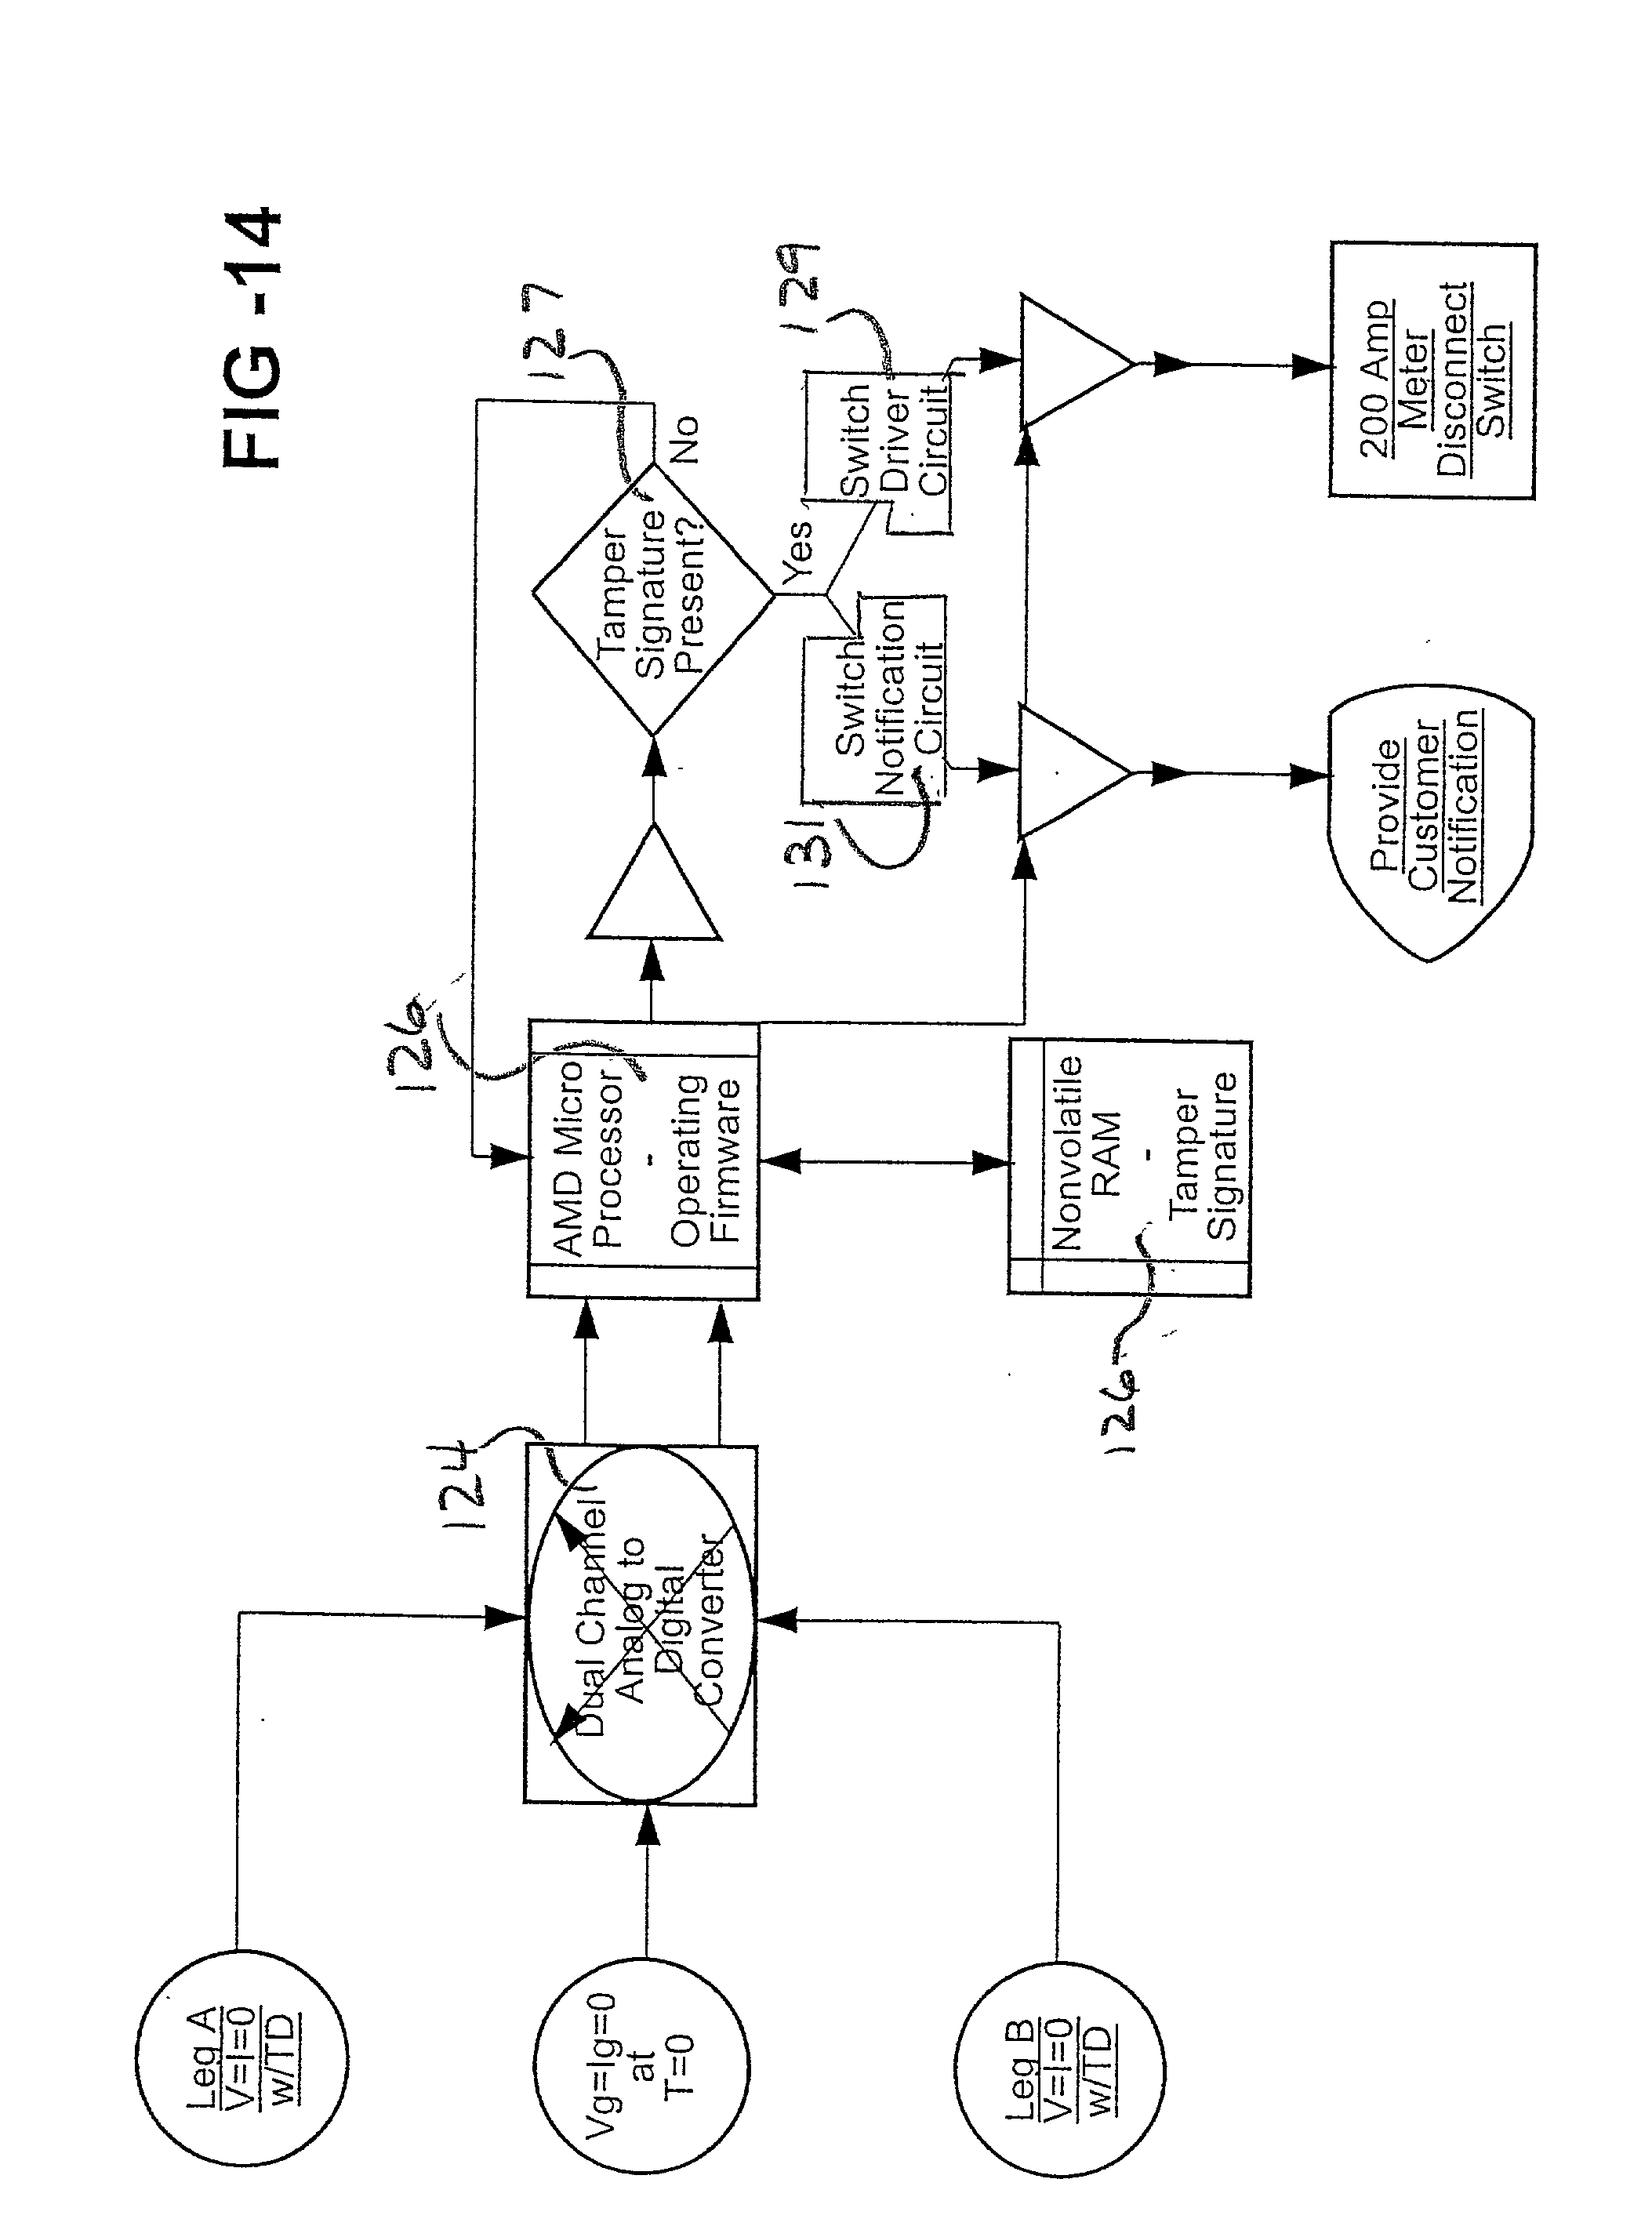 patent us20020063635 point of use digital electric energy Network TCP IP Protocol patent drawing